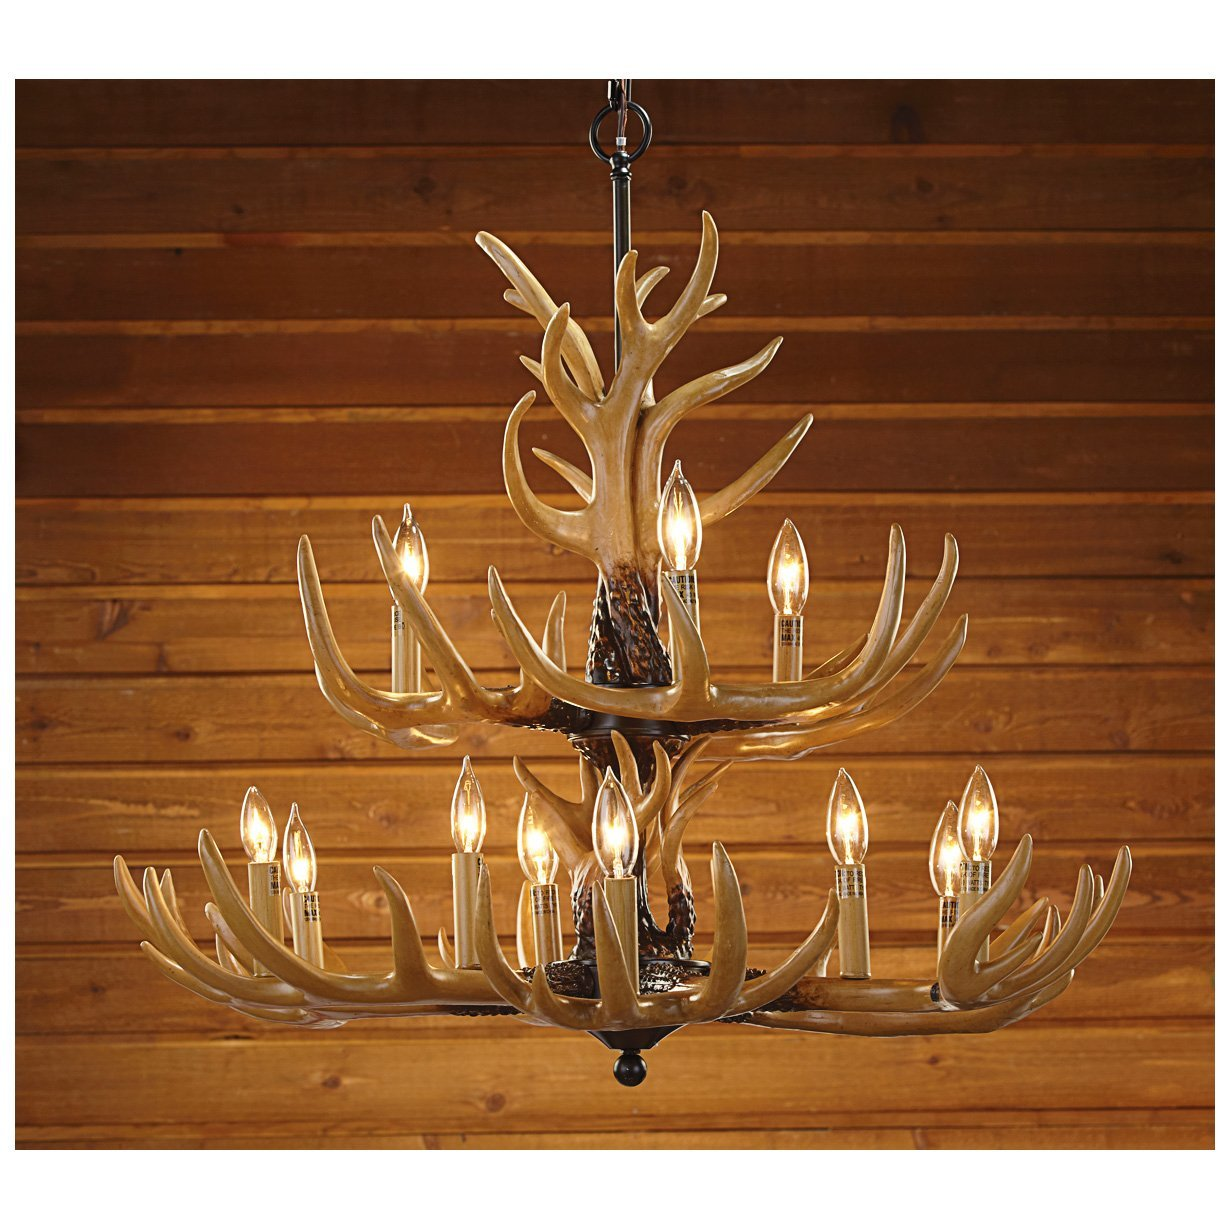 Deer antler light fixtures fabulous antler replica lighting options aloadofball Image collections